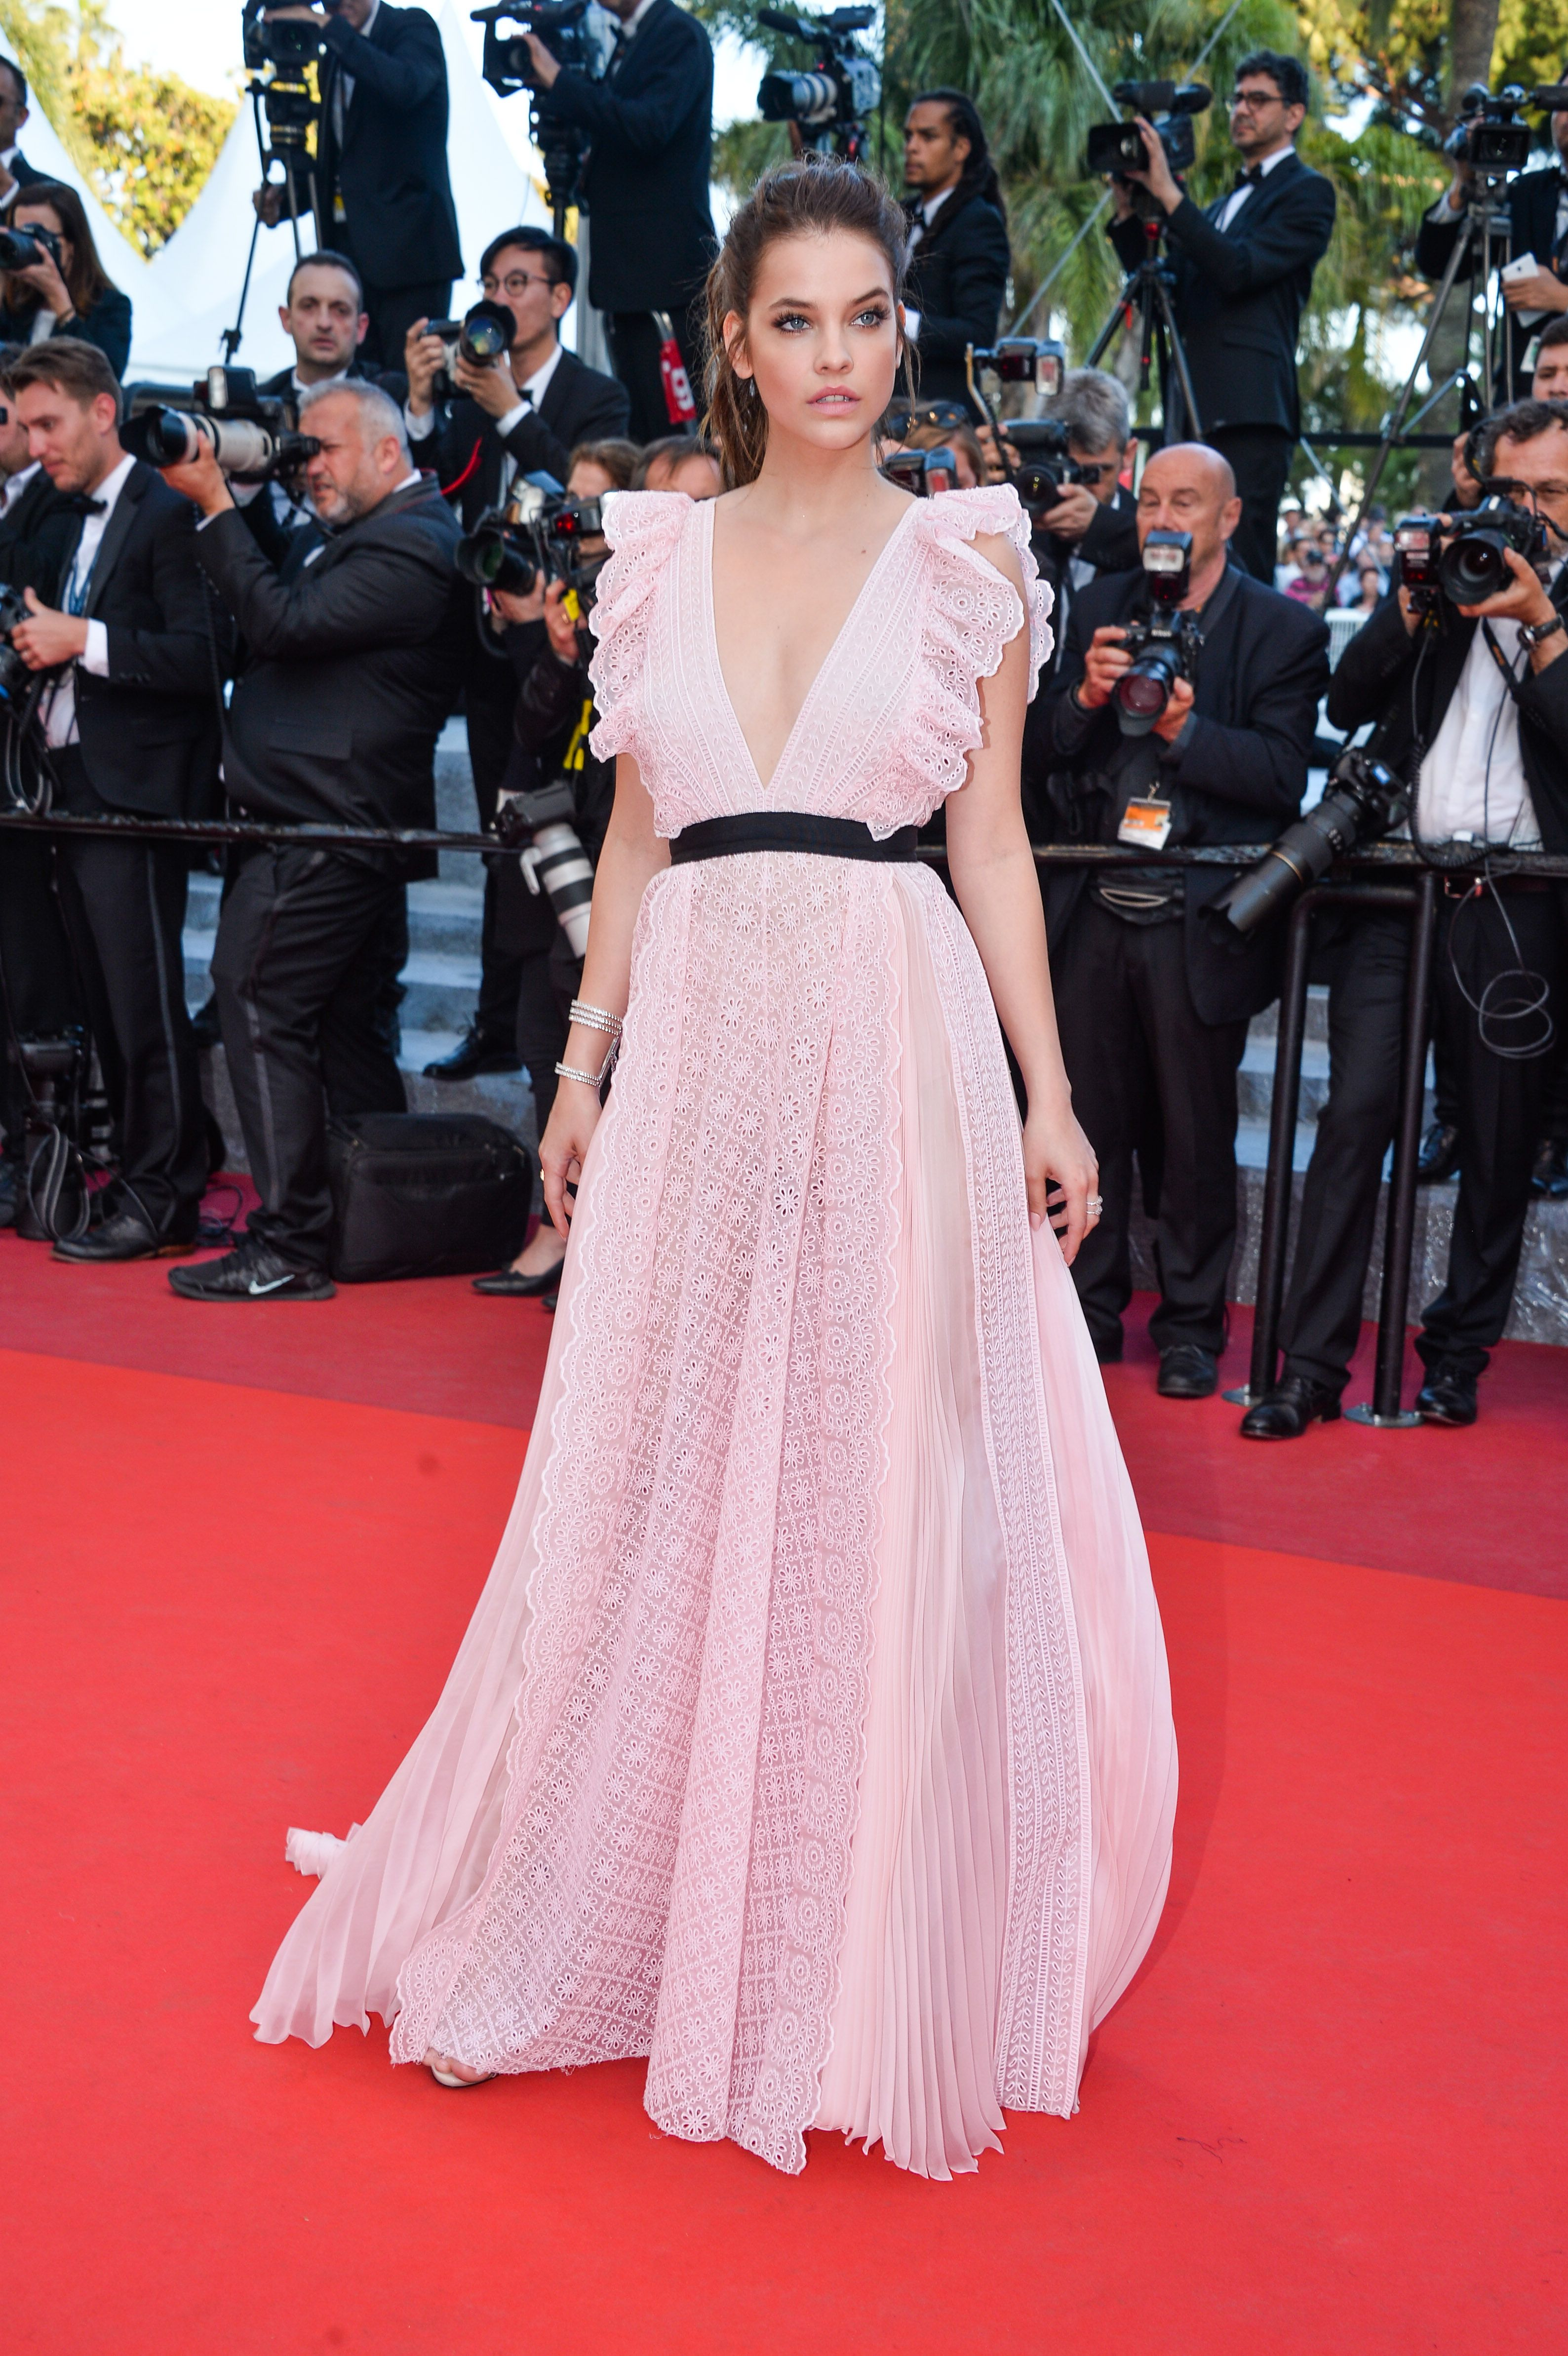 Barbara Palvin at Cannes film festival 94e9207c2181